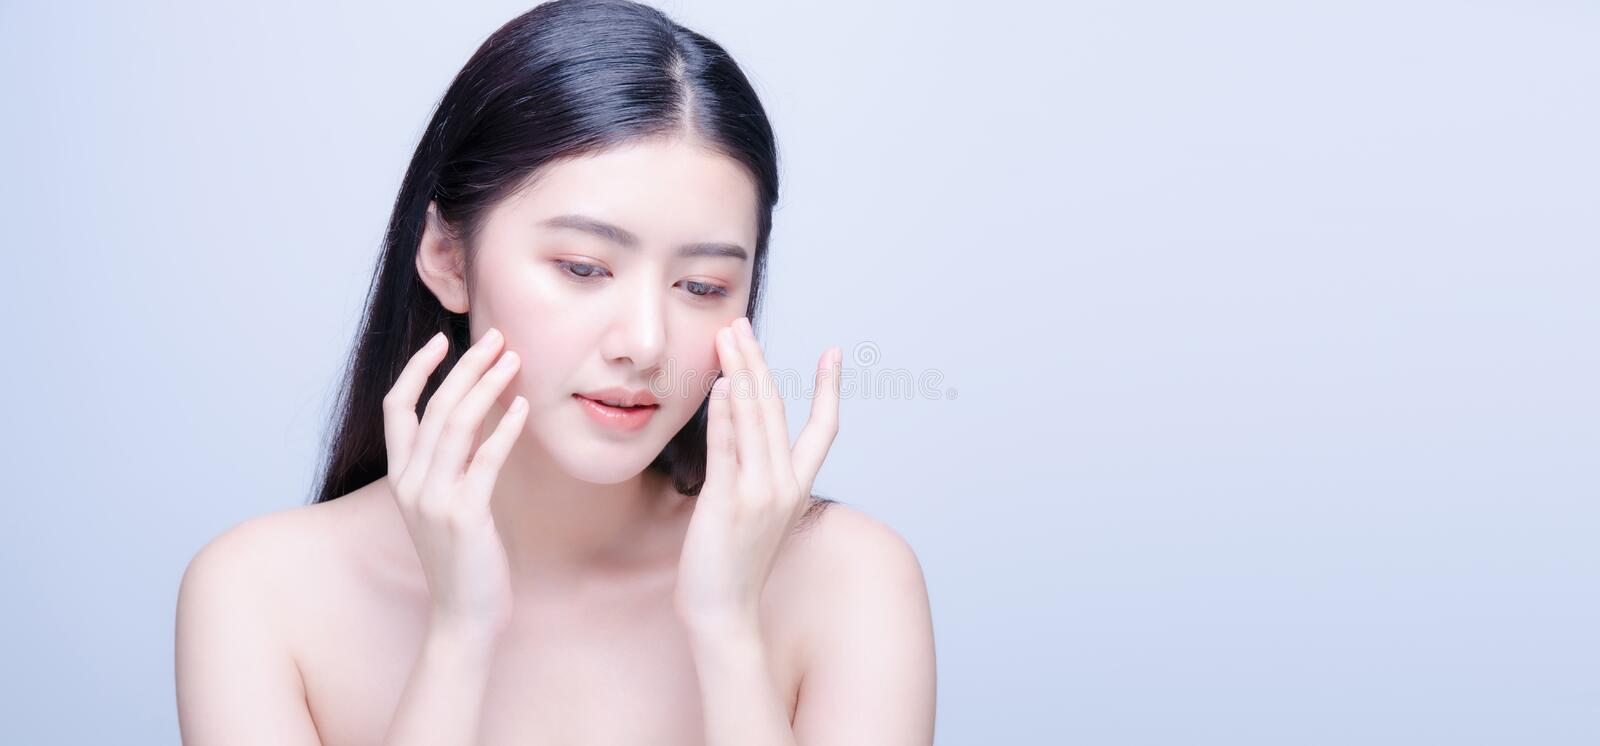 Beauty skin care asian woman smile to you isolated on blue background. Face, eye, model, pretty, attractive, chinese, clean, copy, copyspace, cosmetics, cute royalty free stock images